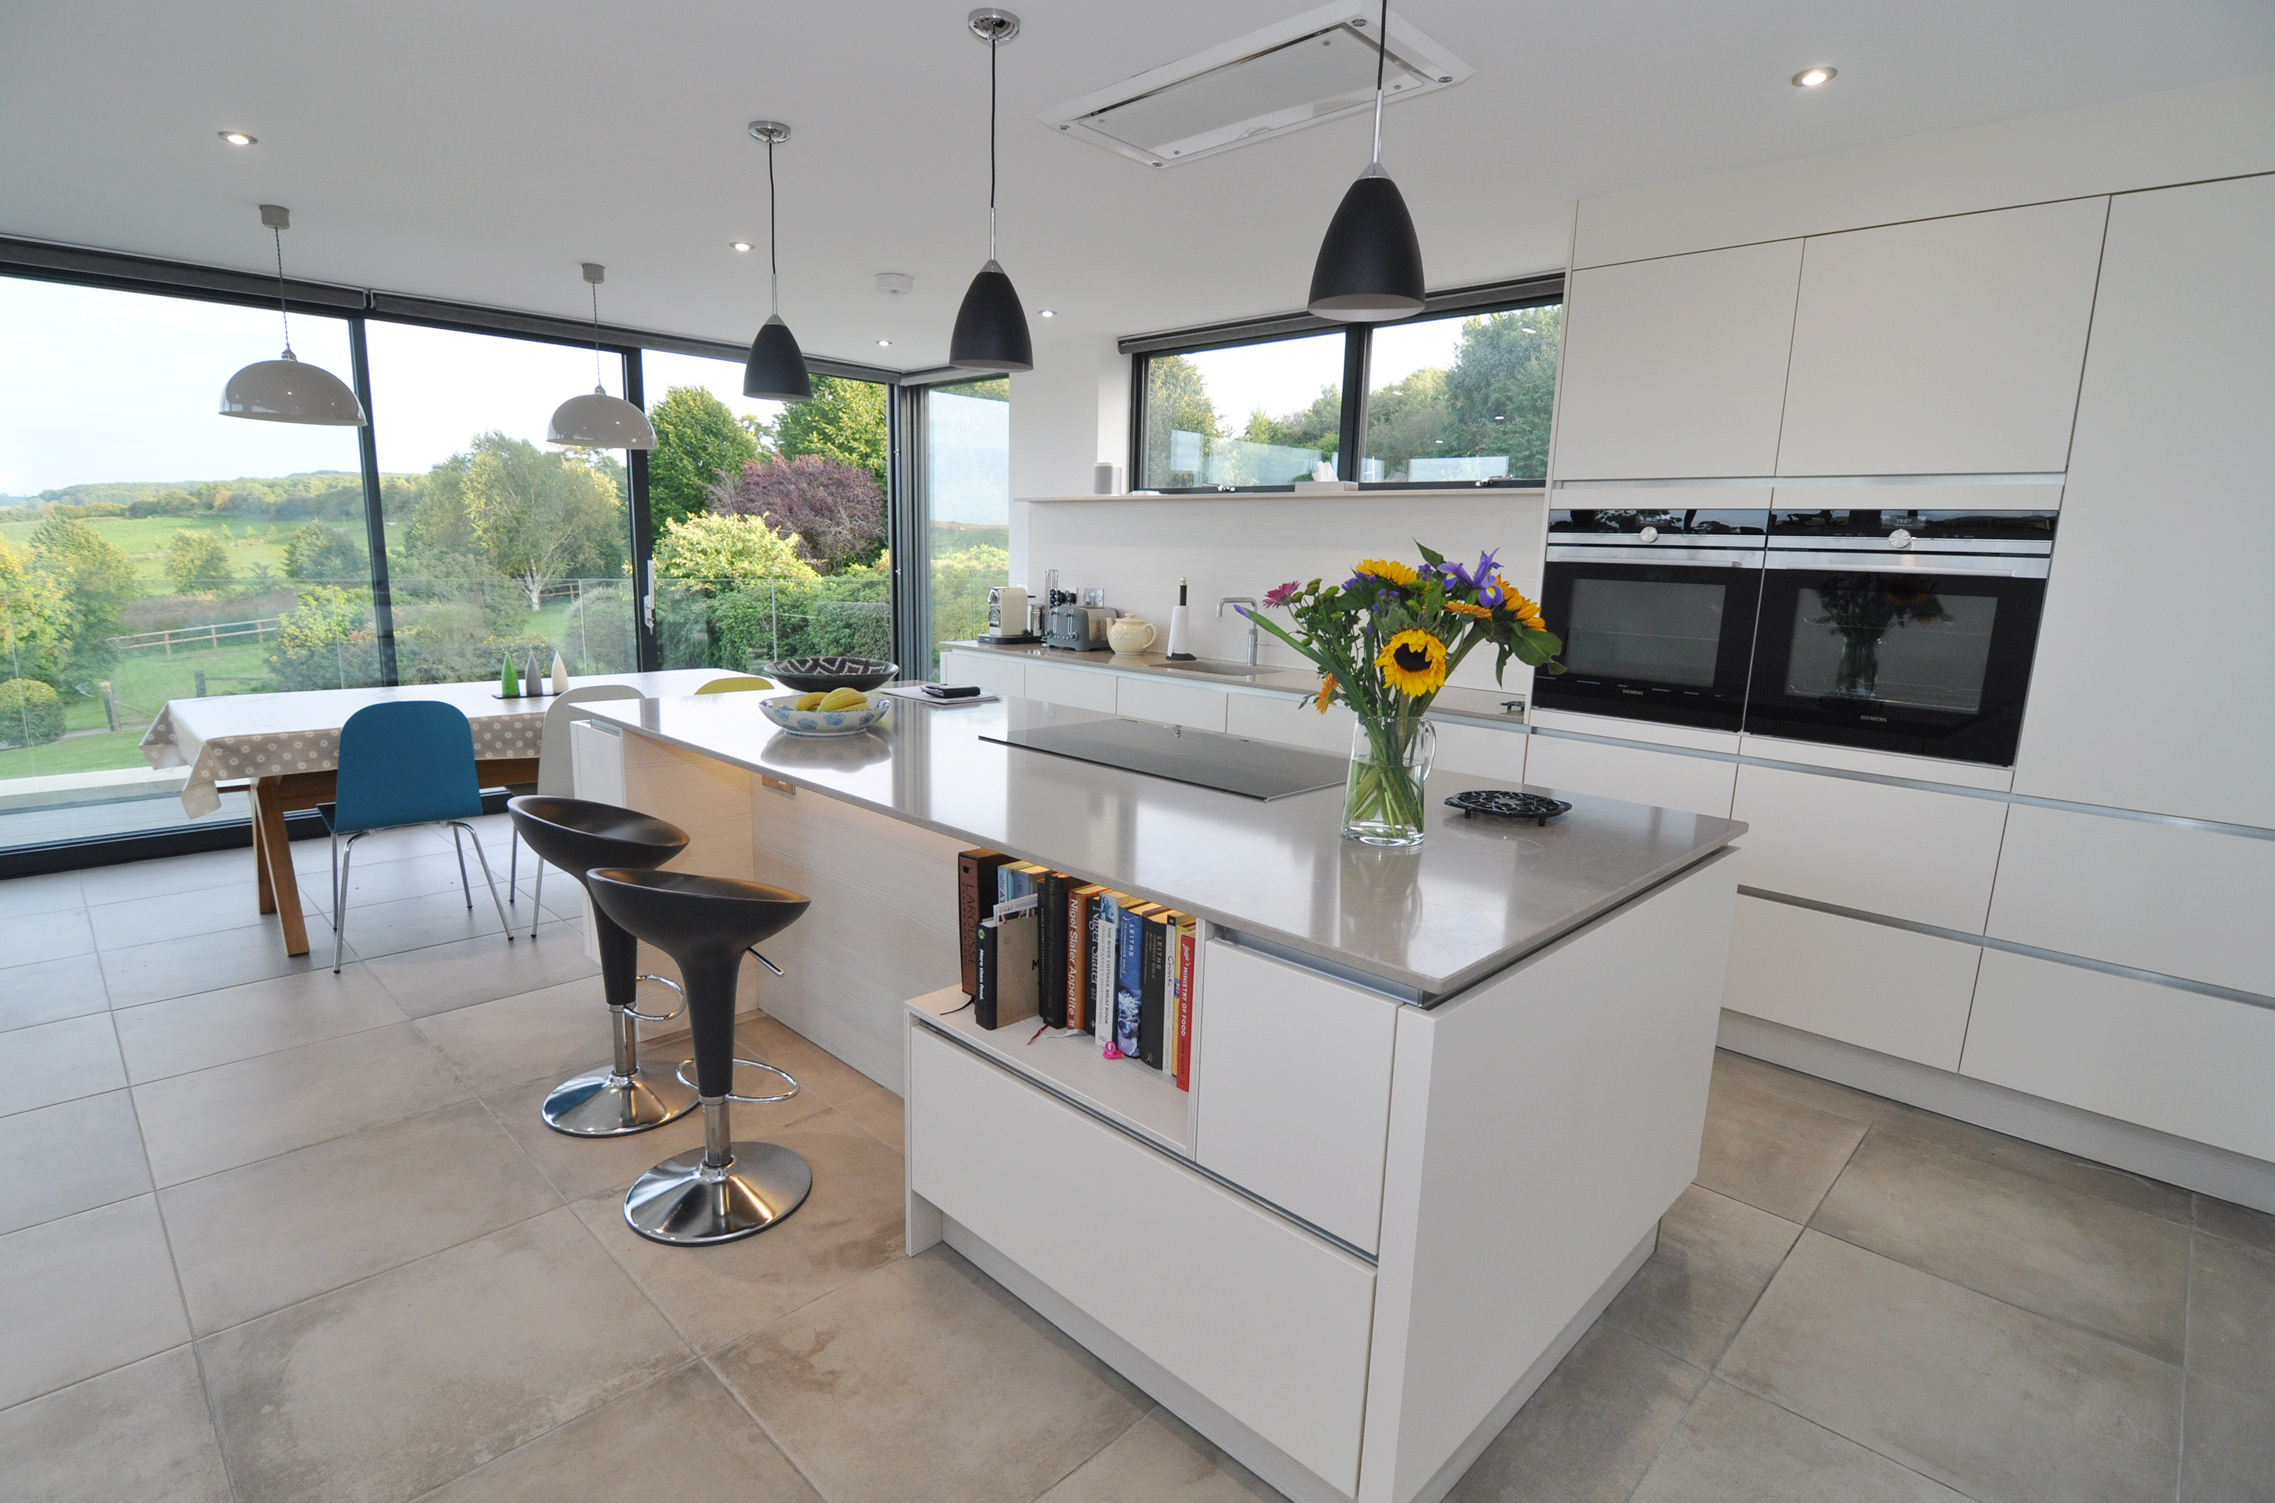 Cleeve Hill Kitchen Project - Kitchens Cirencester, Voga Kitchens